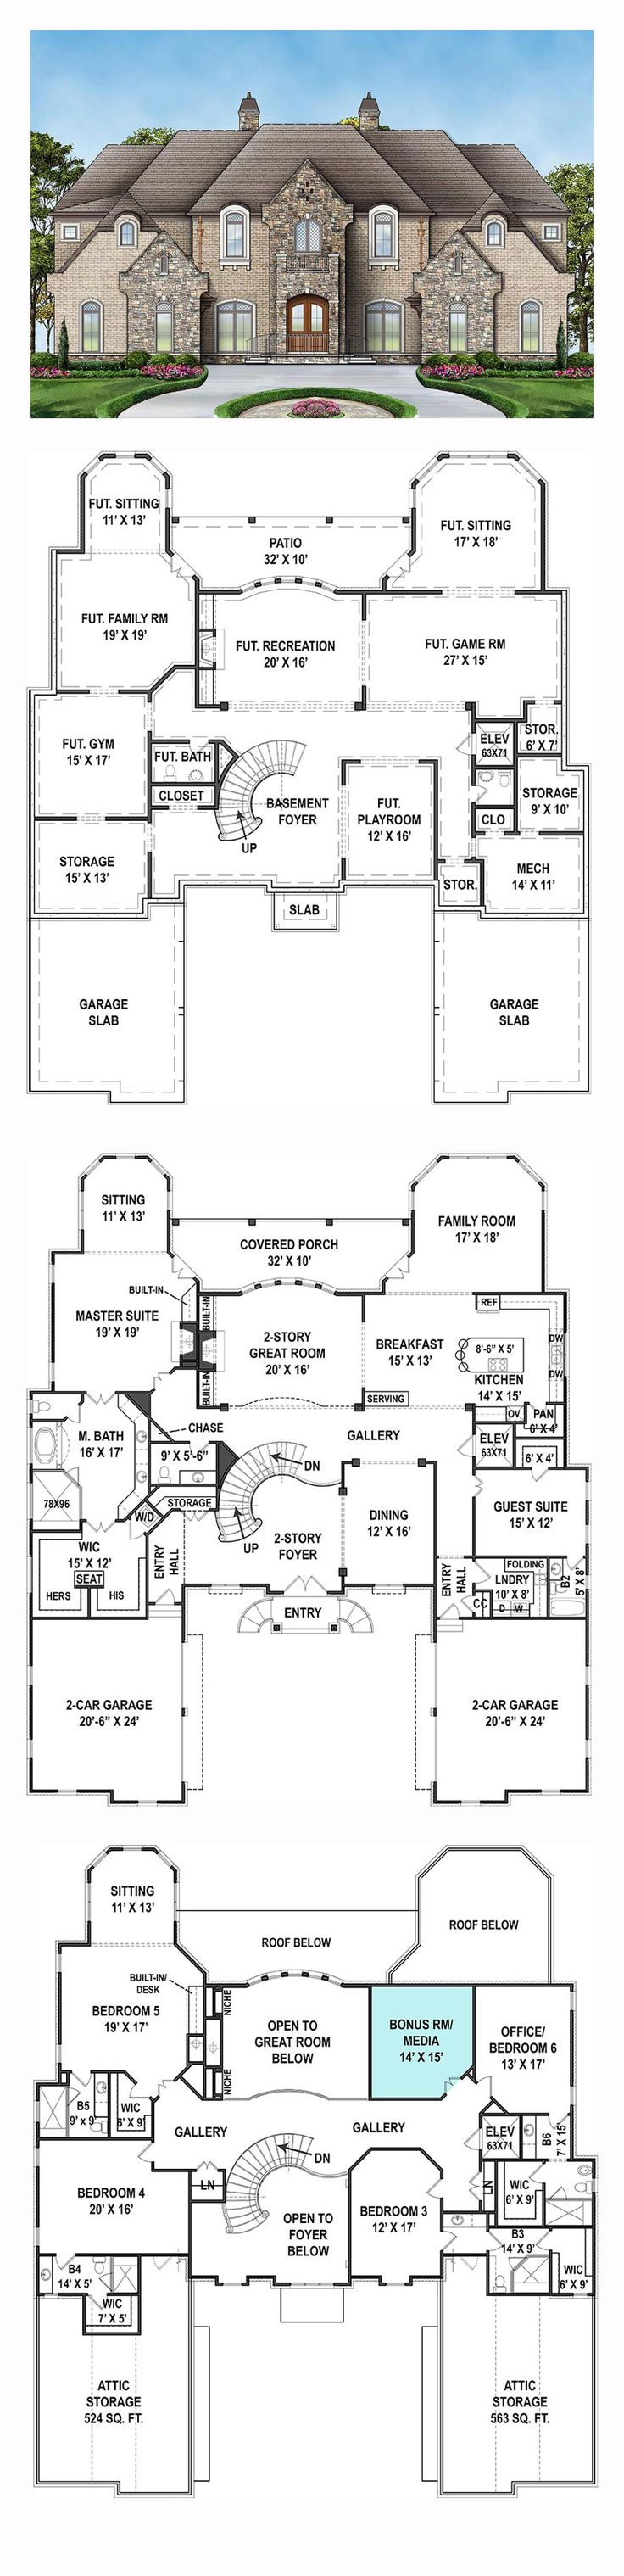 Best 25 House blueprints ideas on Pinterest House floor plans